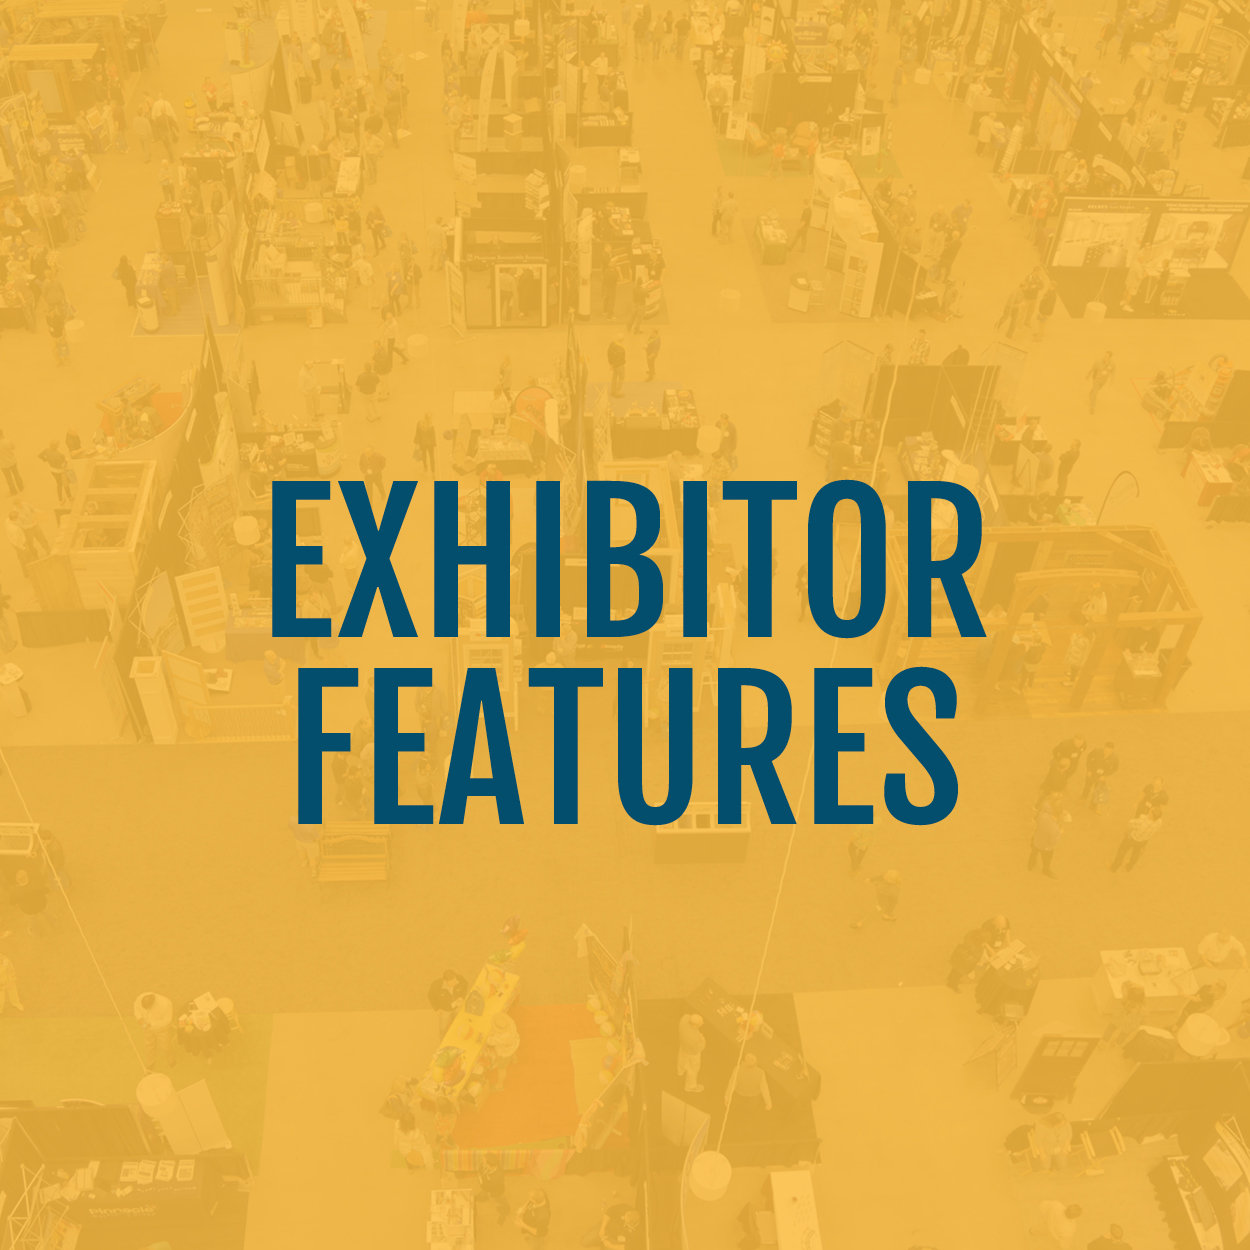 Exhibitor Features-Yellow.jpg